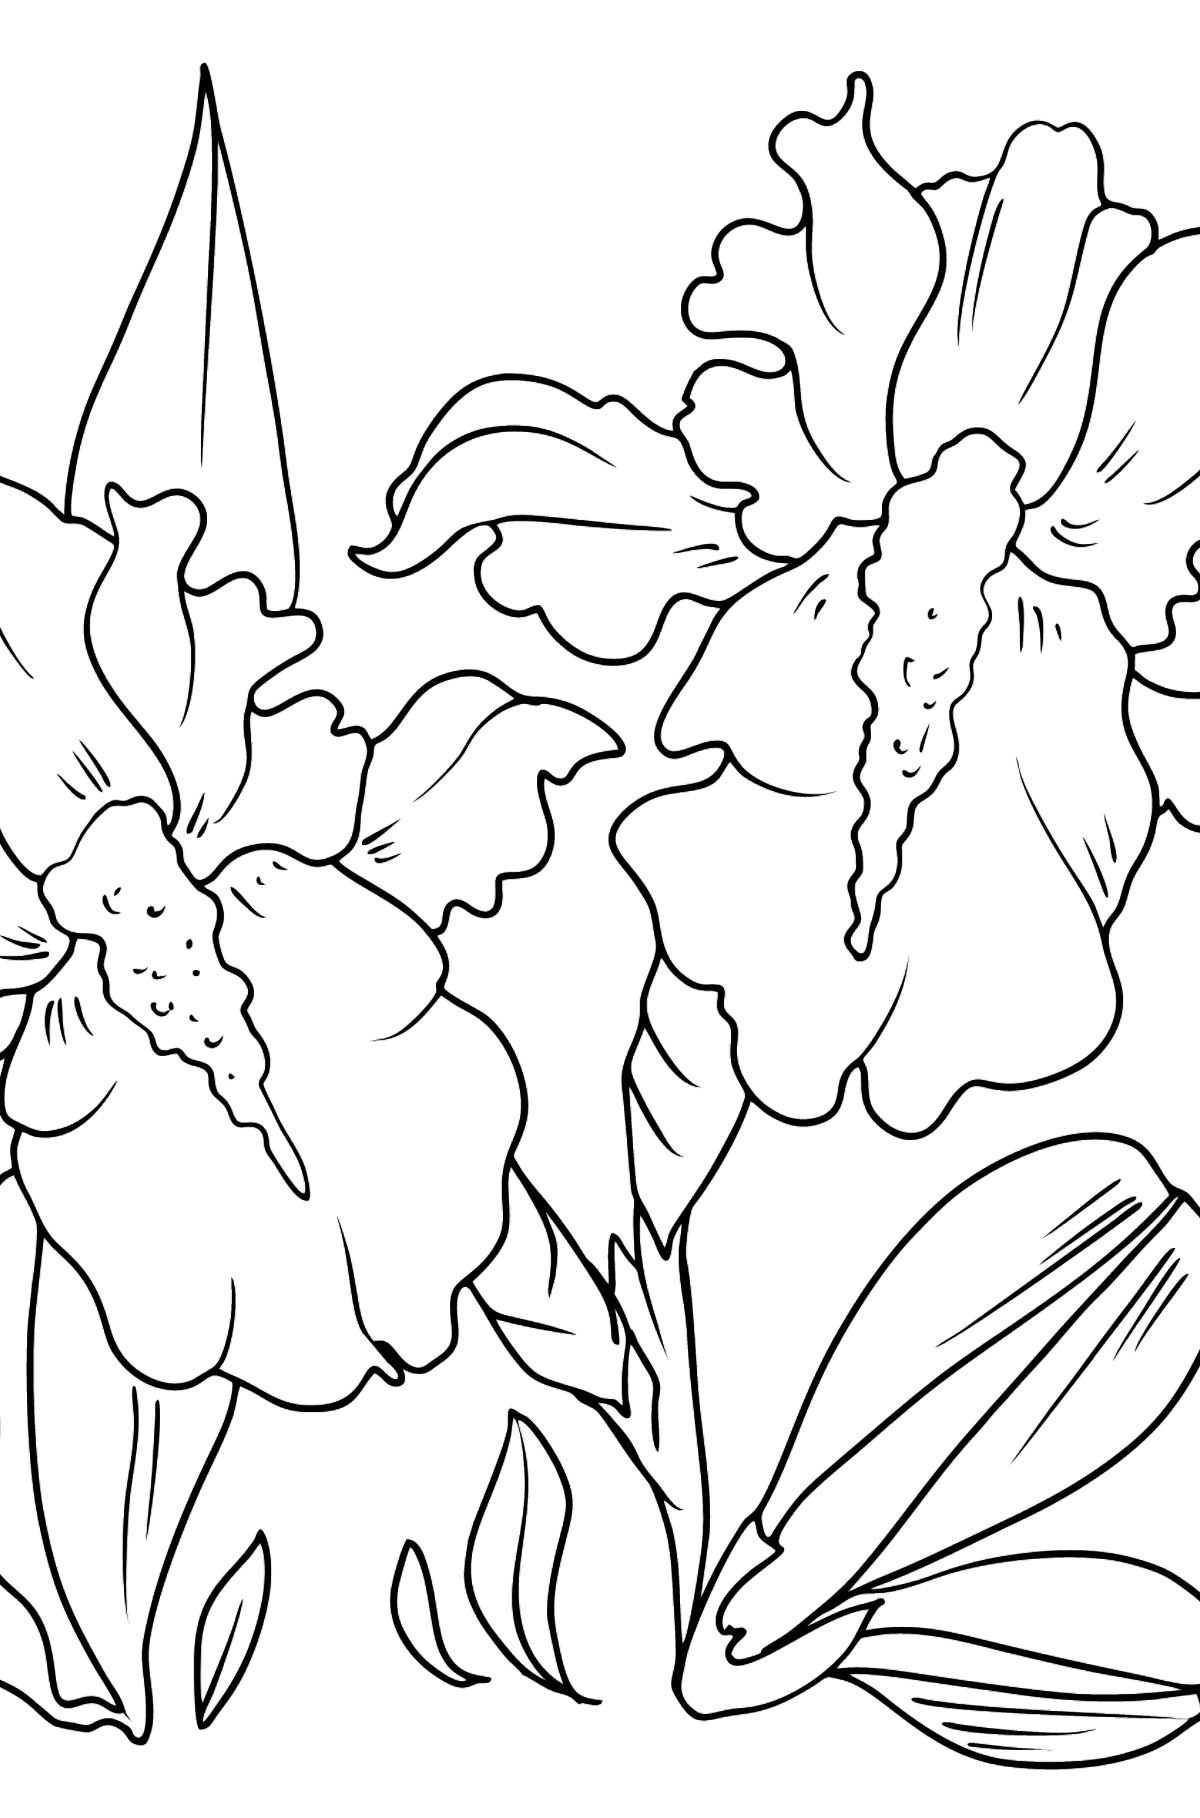 Flower Coloring Page - Irises - Coloring Pages for Kids